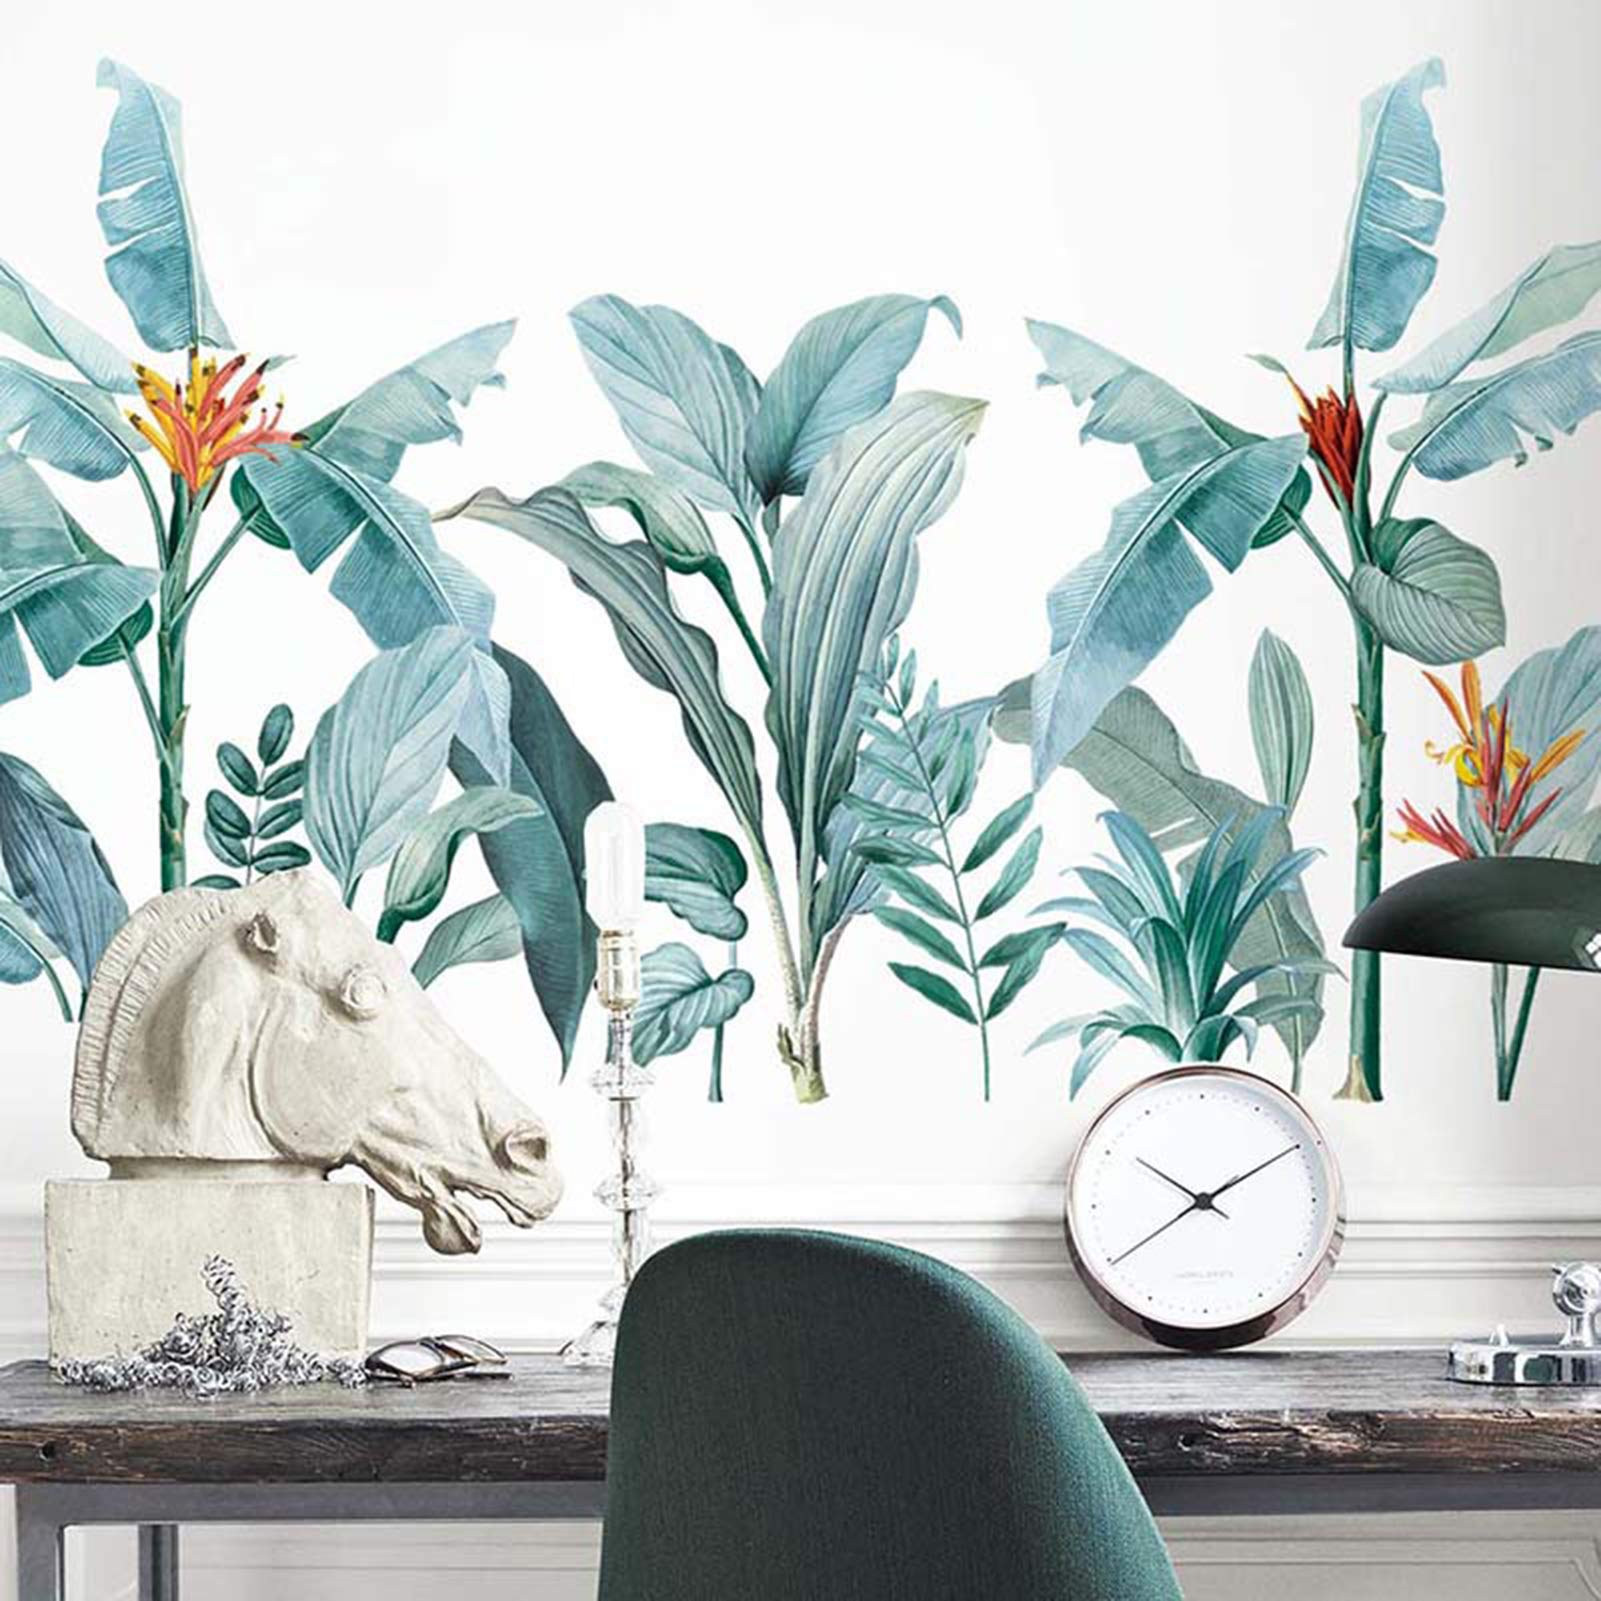 Watercolor Plants Wall Decals Tropical Leaves Wall Stickers for Bedroom, Removable Peel and Stick Wall Posters Art Murals for Living Room Nursery Office